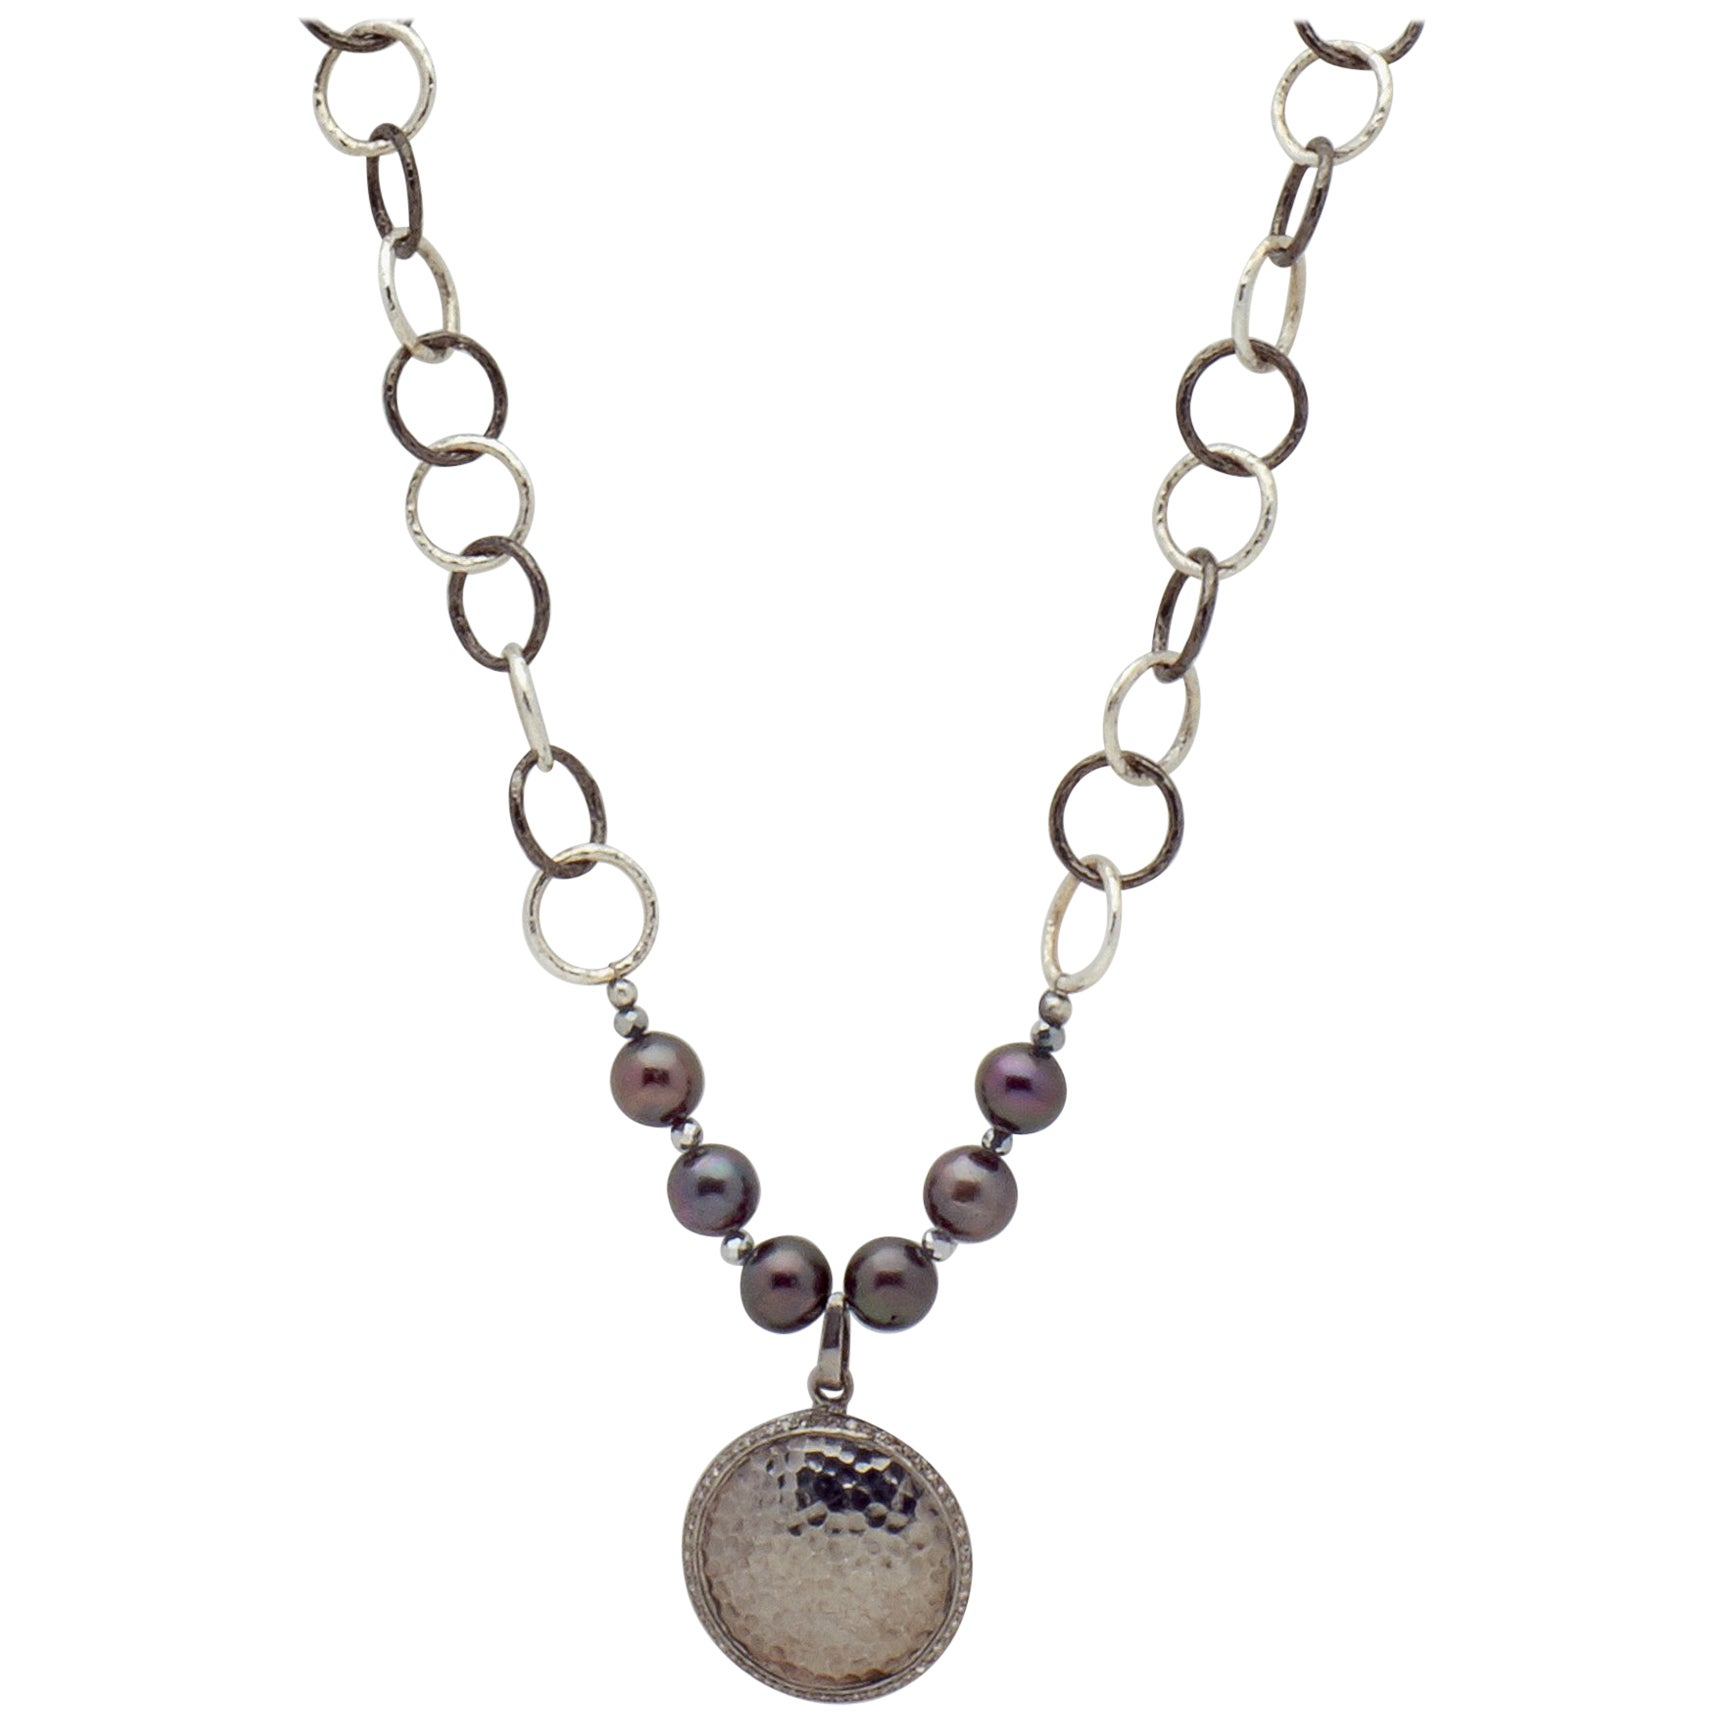 Two Tone Sterling Silver Chain Necklace w Hammered Sterling Diamond Pendant